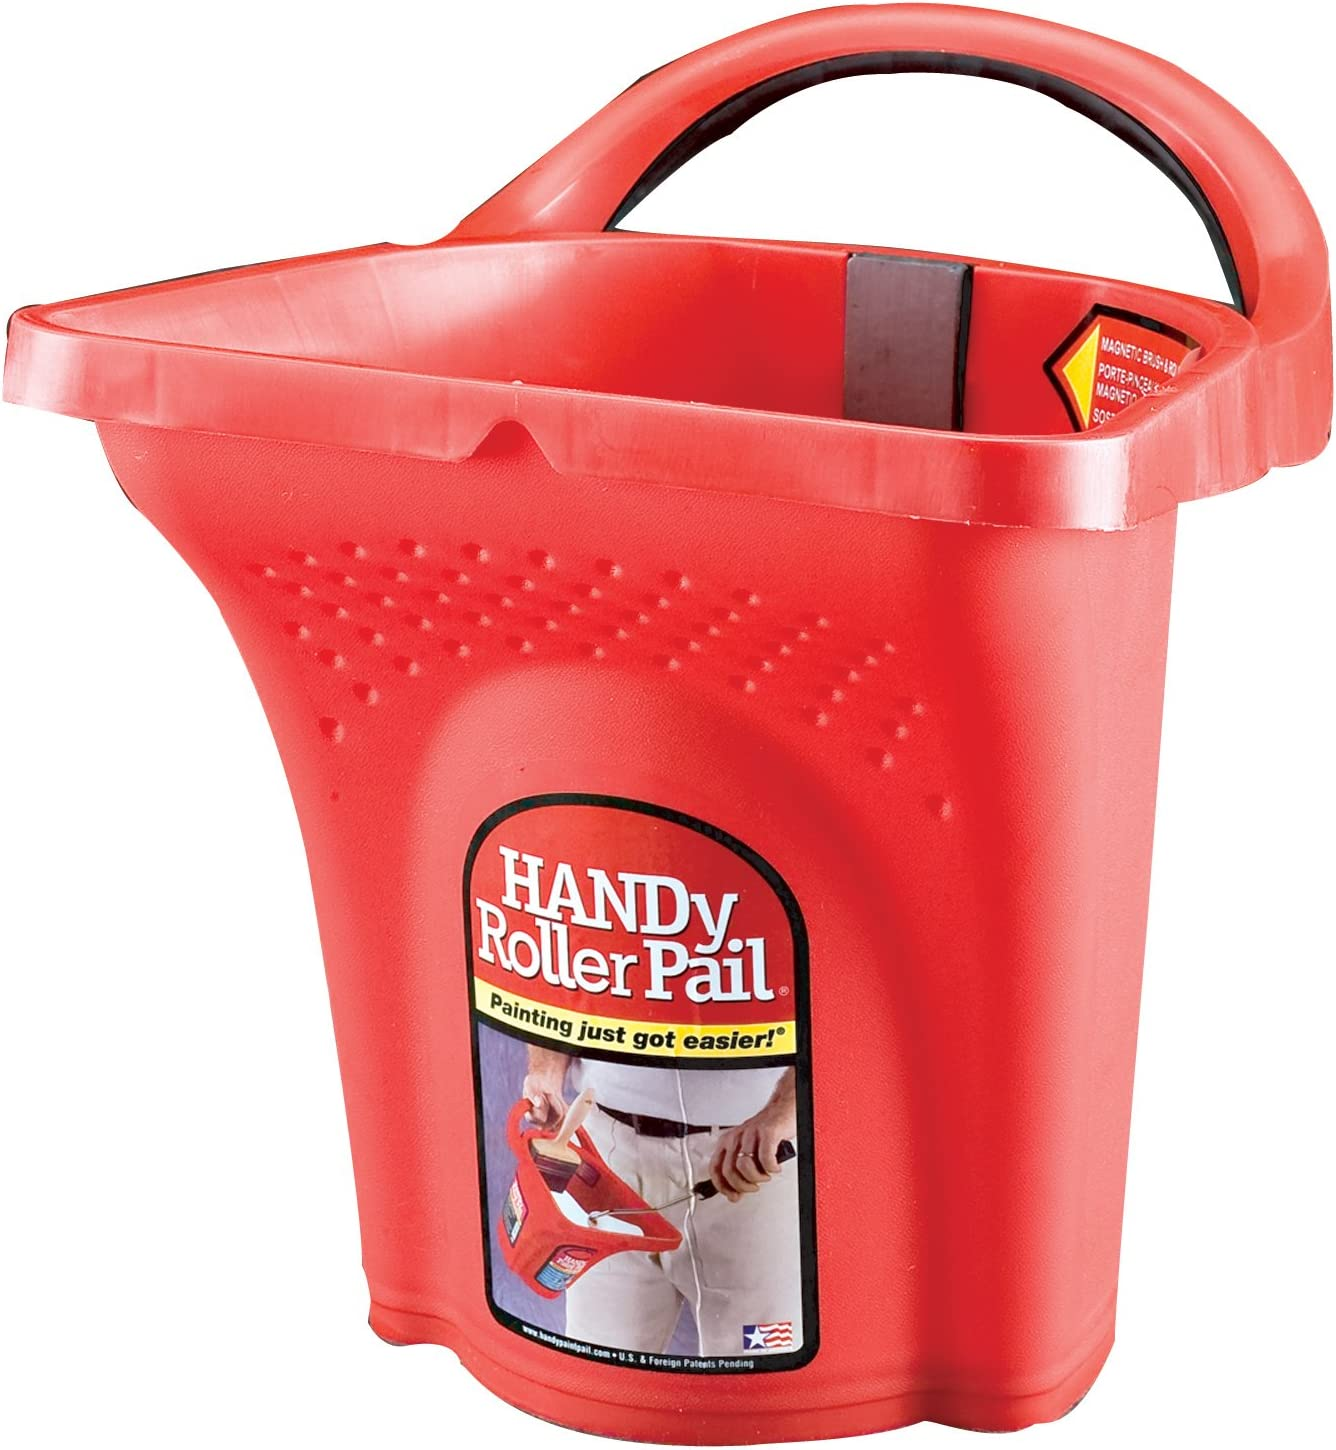 Handy New Shipping Free Roller Pail - Pack 6 Bulk Max 41% OFF